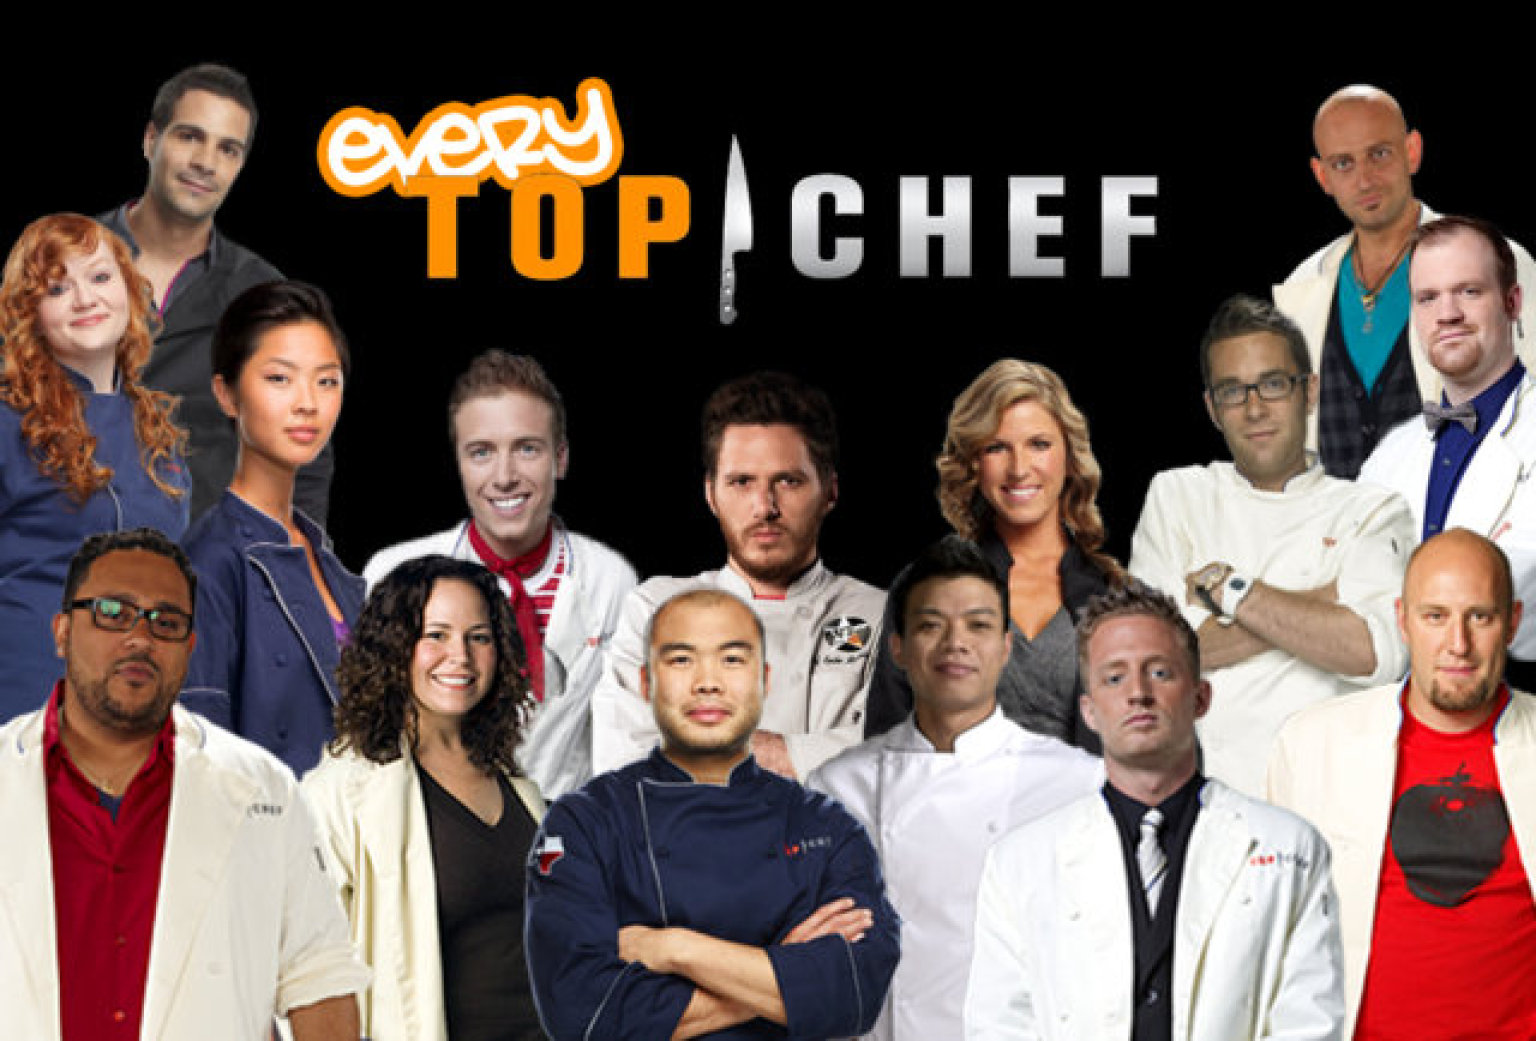 Top Chef: The Astoundingly Comprehensive Guide To EVERY SINGLE Top